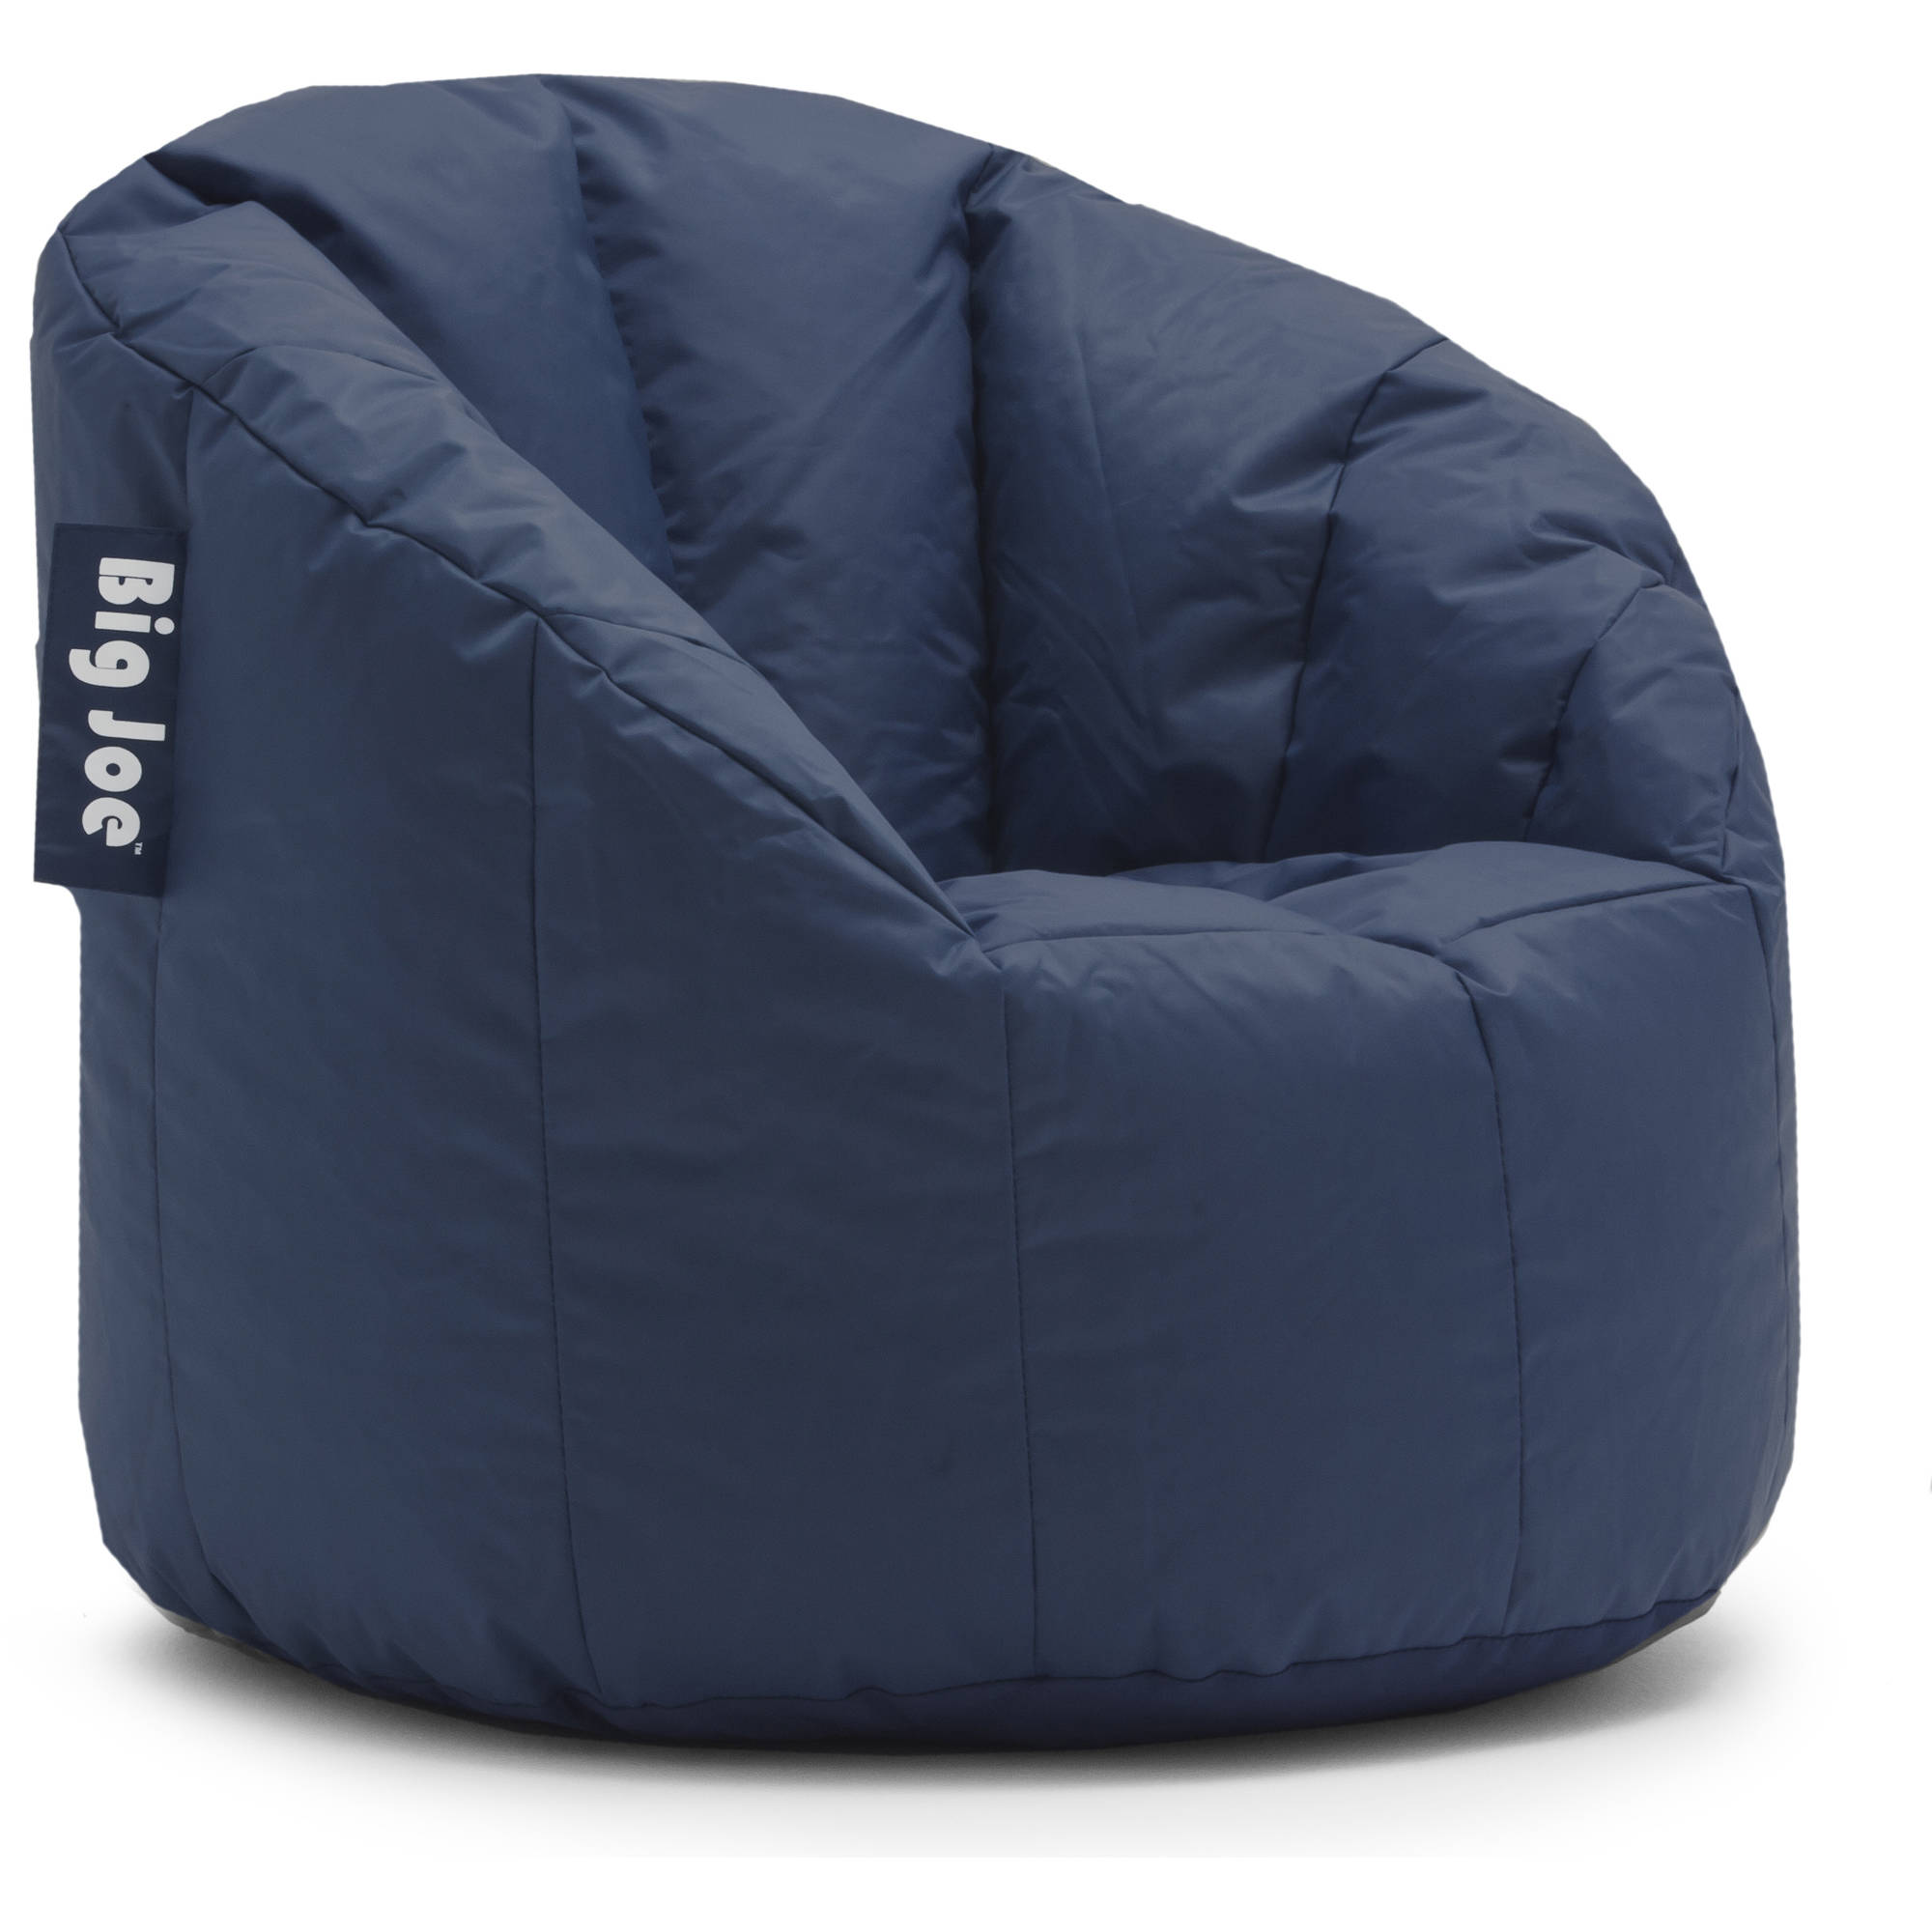 Bean bag chairs price - Bean Bag Chairs Price 39